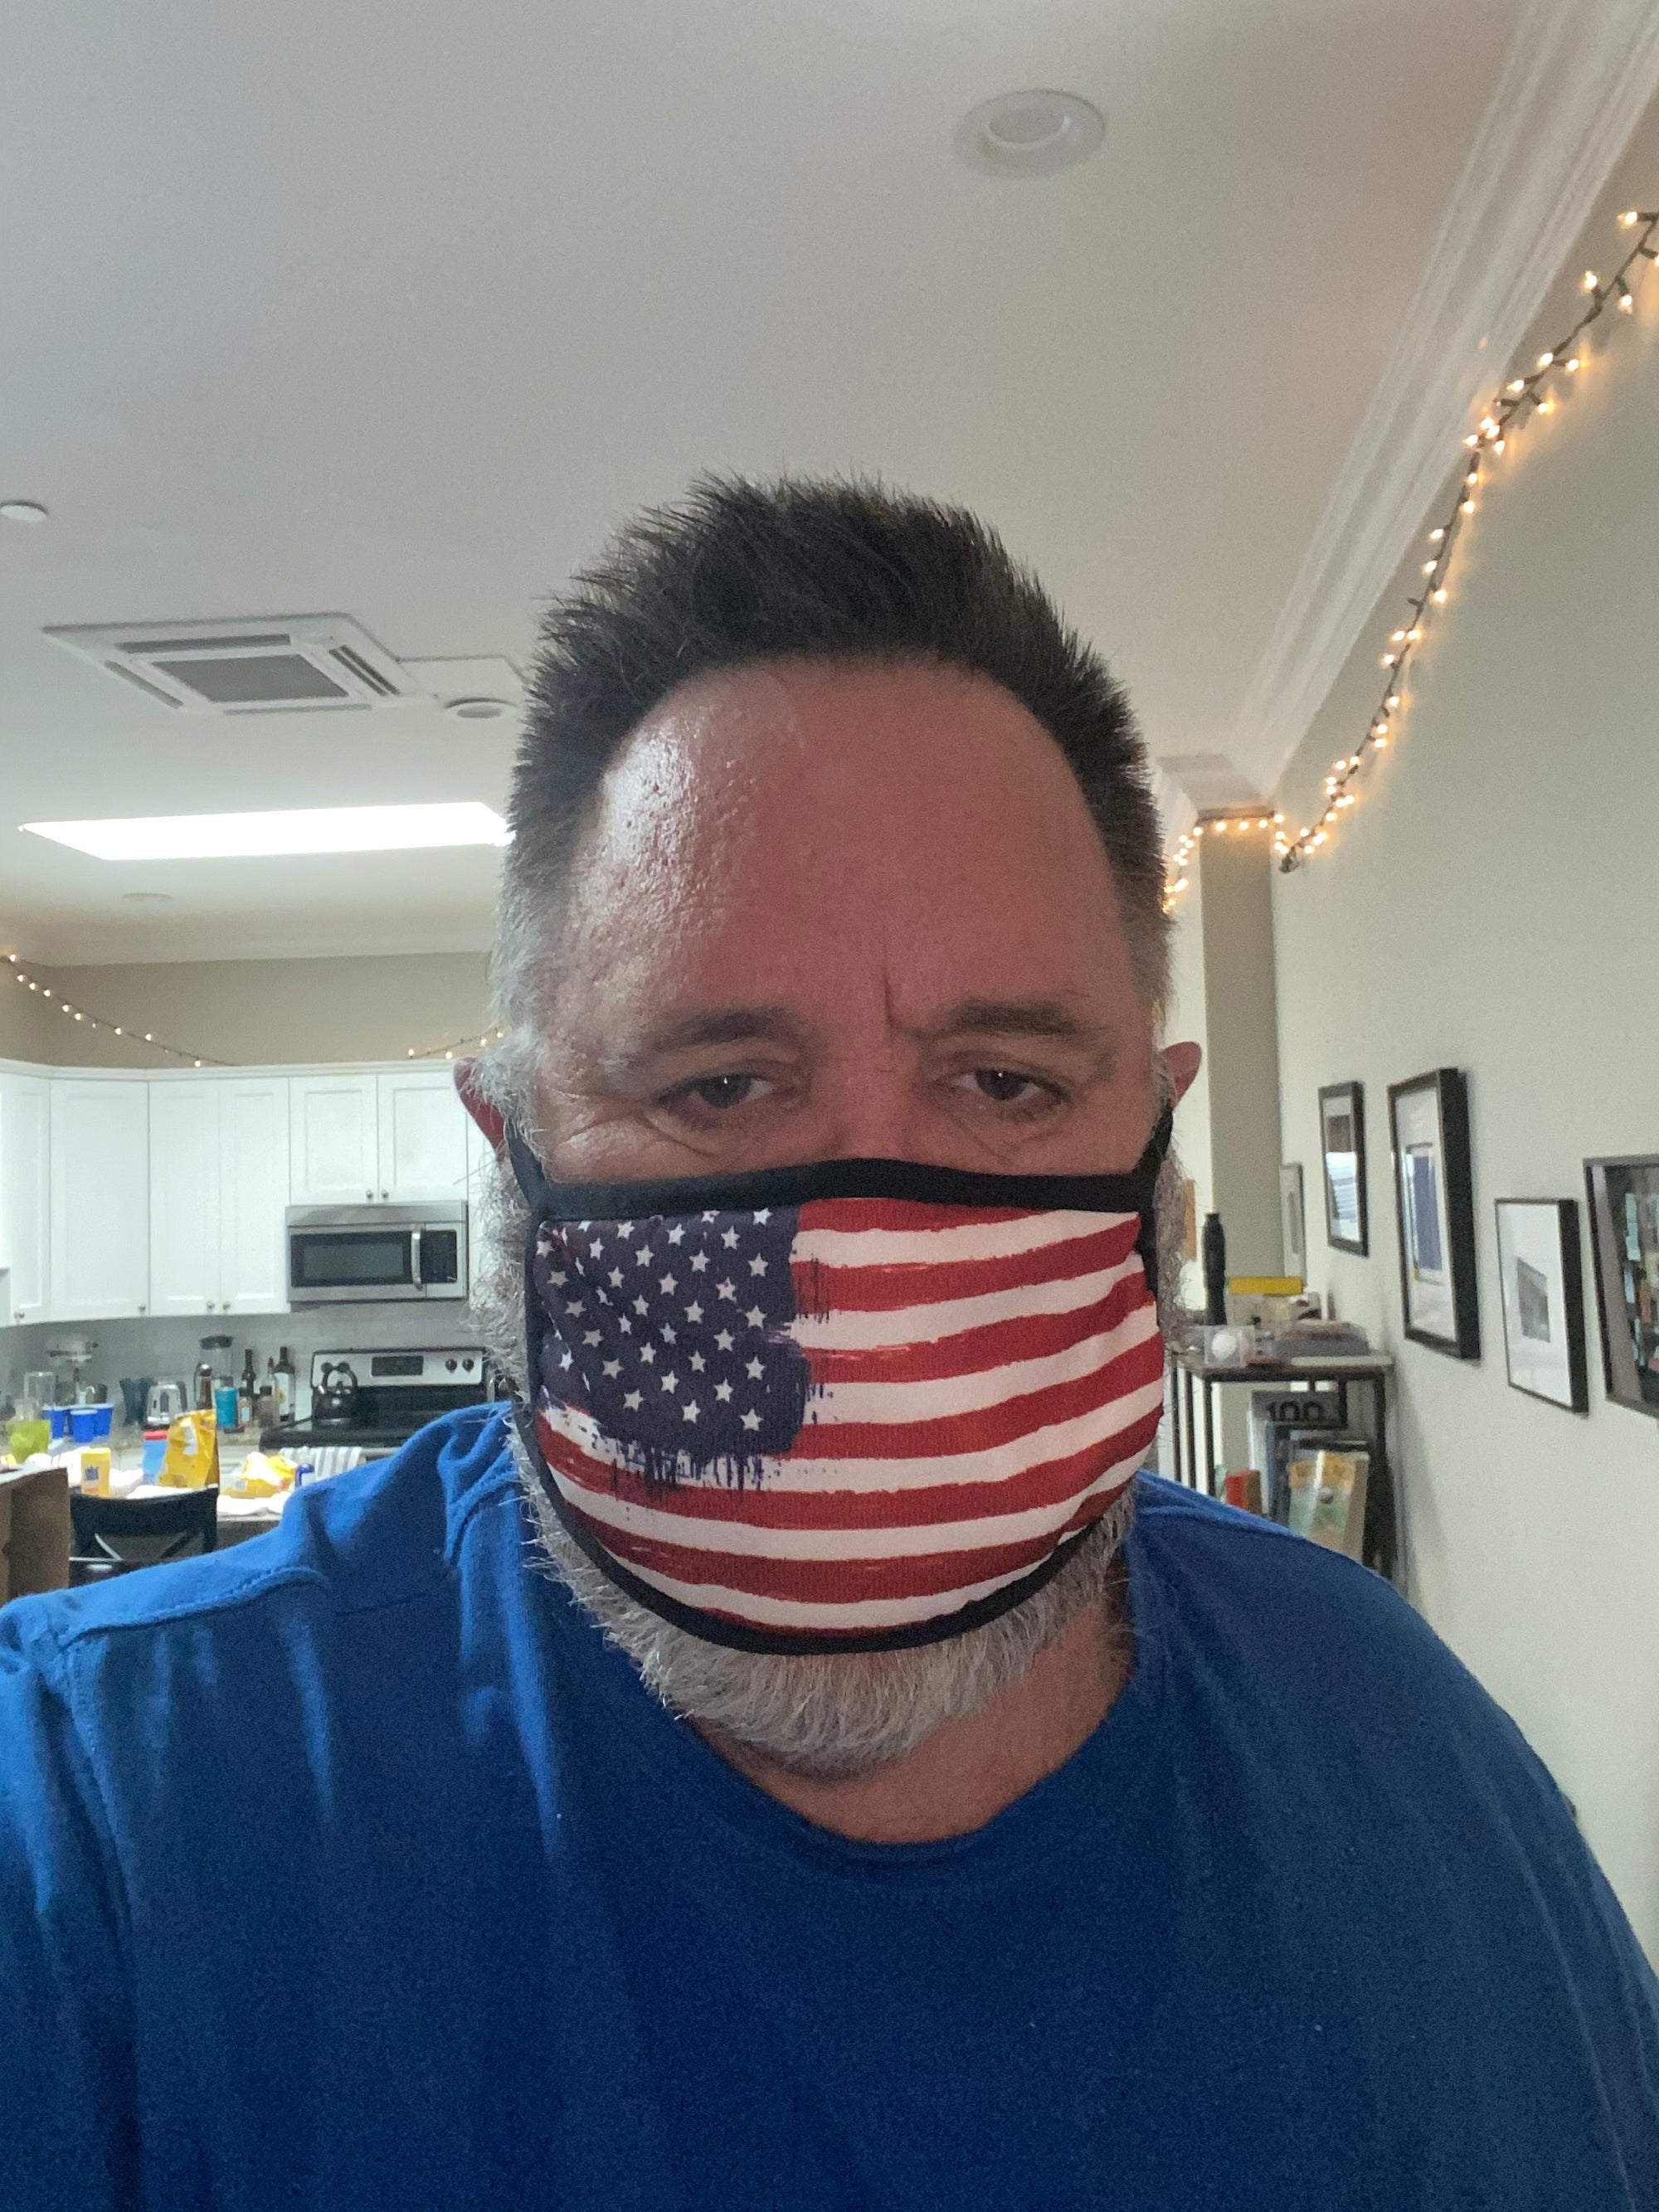 I am a Dad in the U.S.A.: Here's Why I Wear a Face Mask